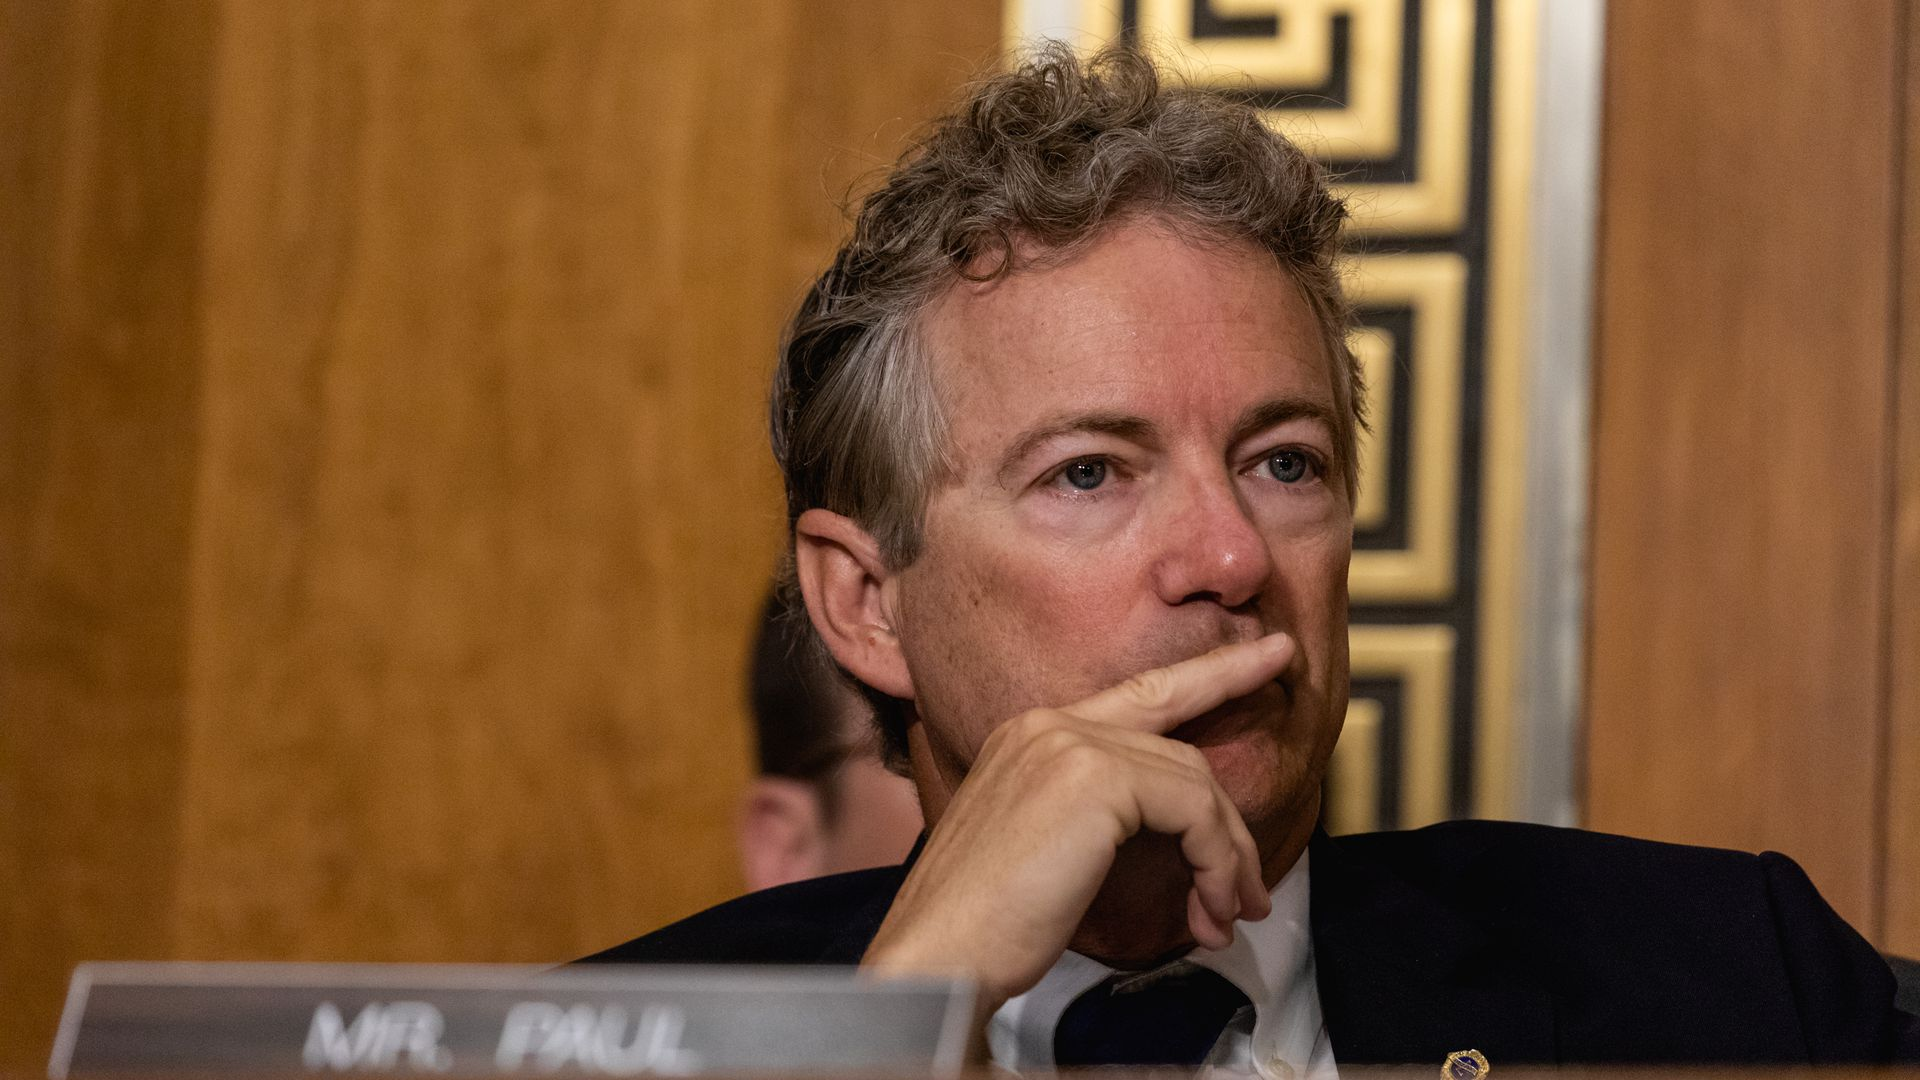 Senator Rand Paul (R-KY), during a Senate Foreign Relations Committee confirmation hearing for Michael Pompeo, nominee for U.S. secretary of state.